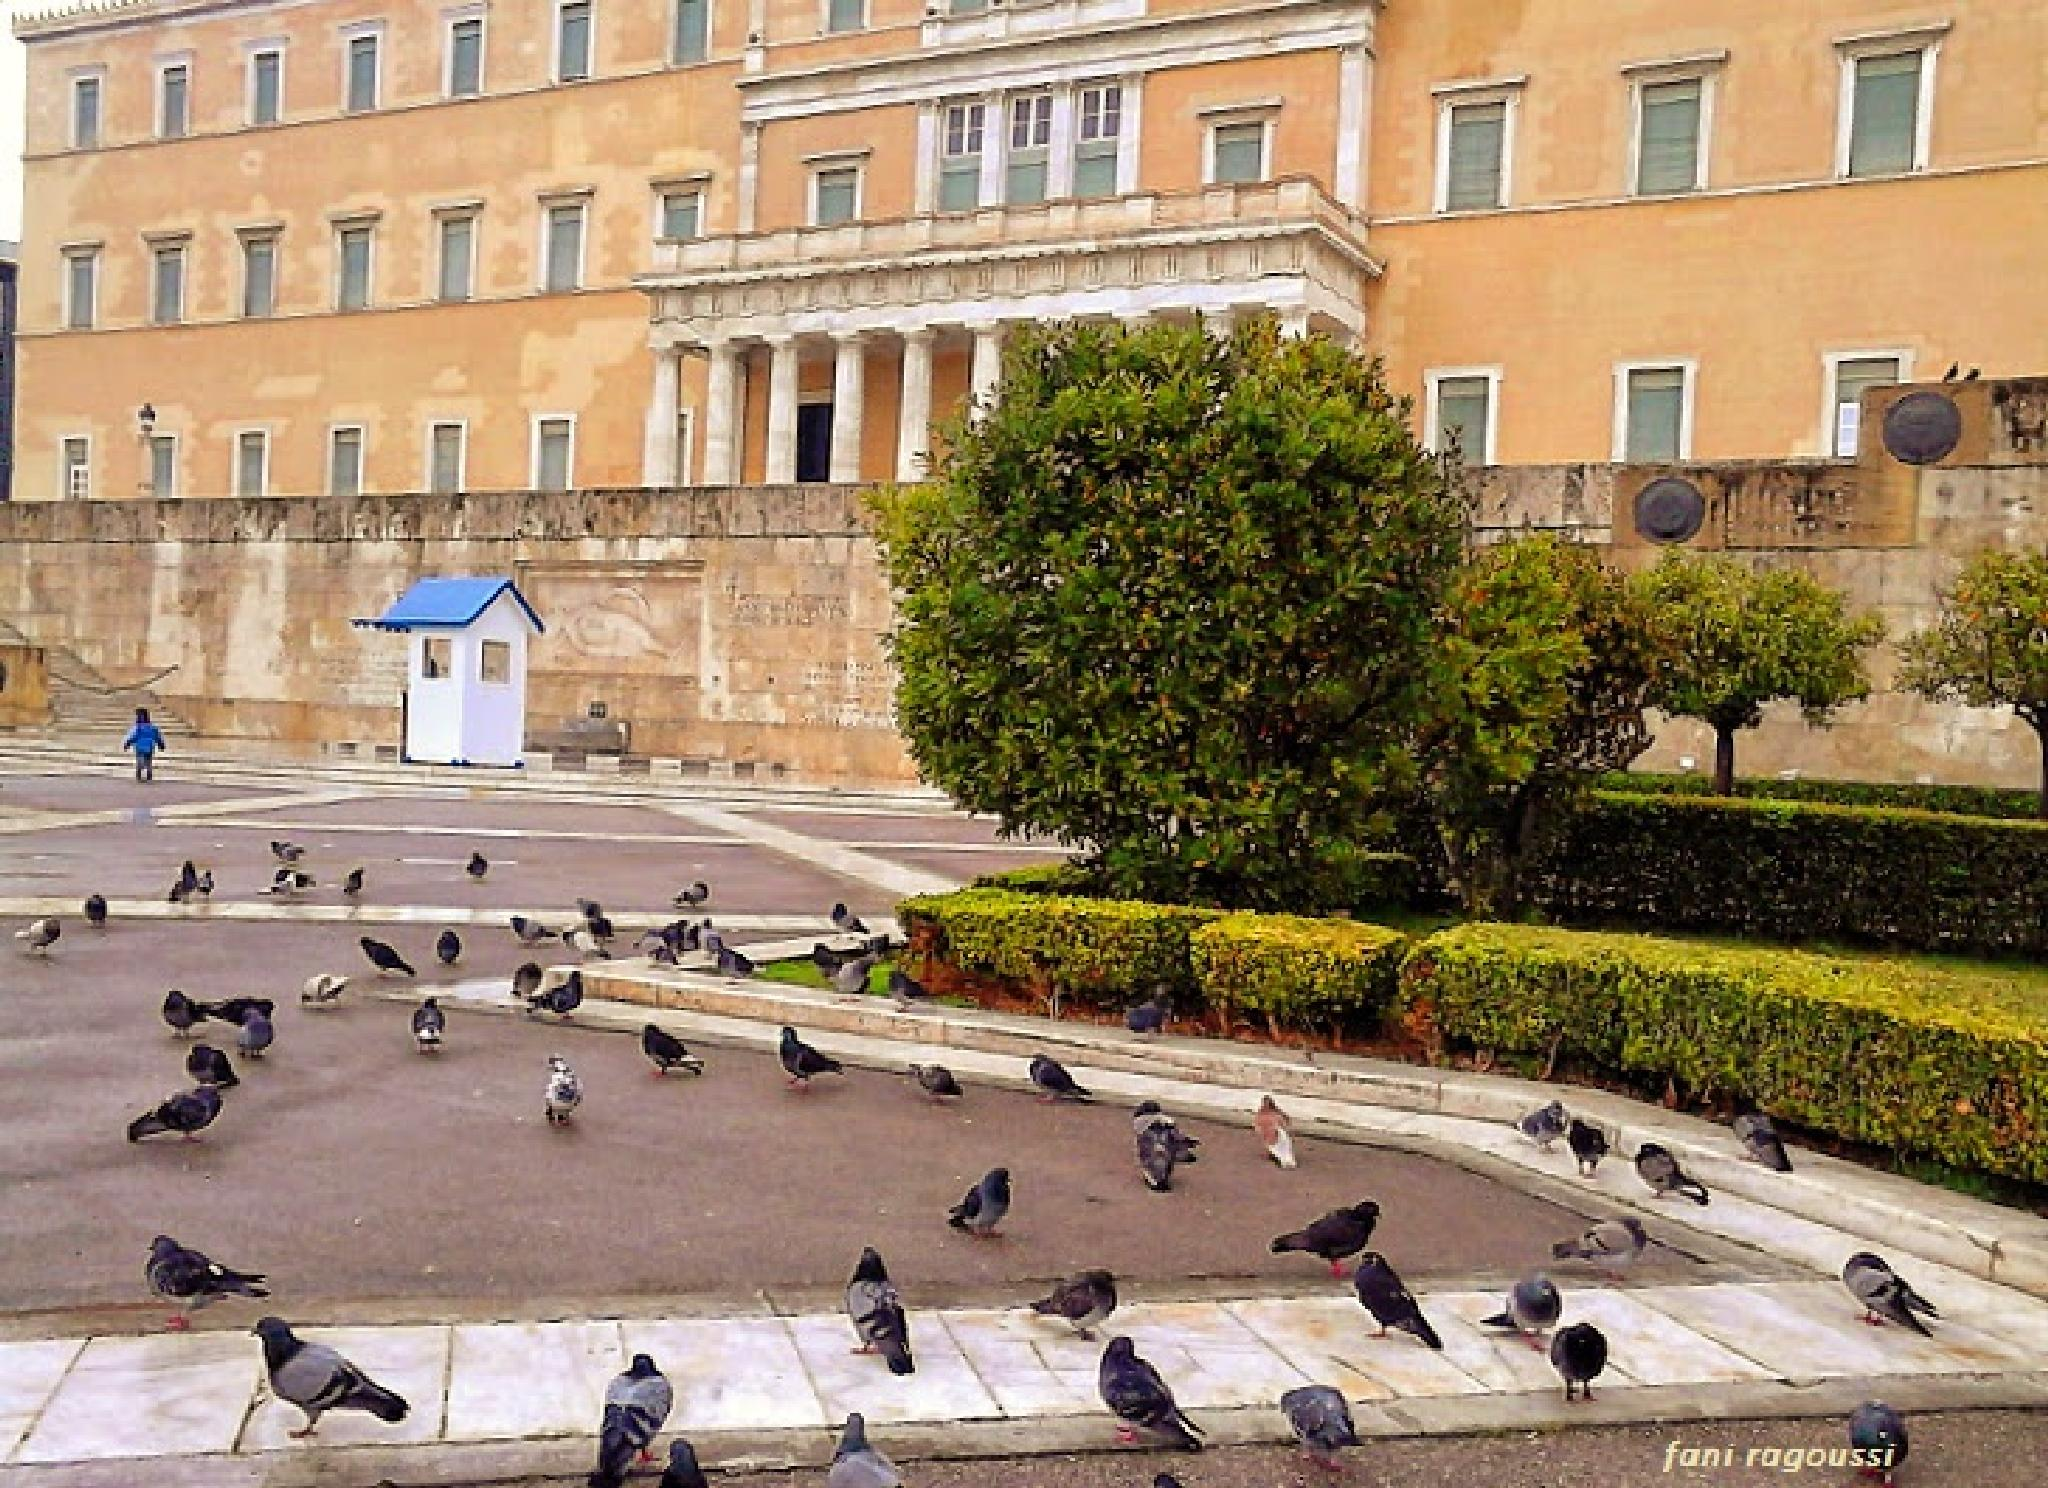 pigeons at Constitution Square in Athens by fani ragoussi